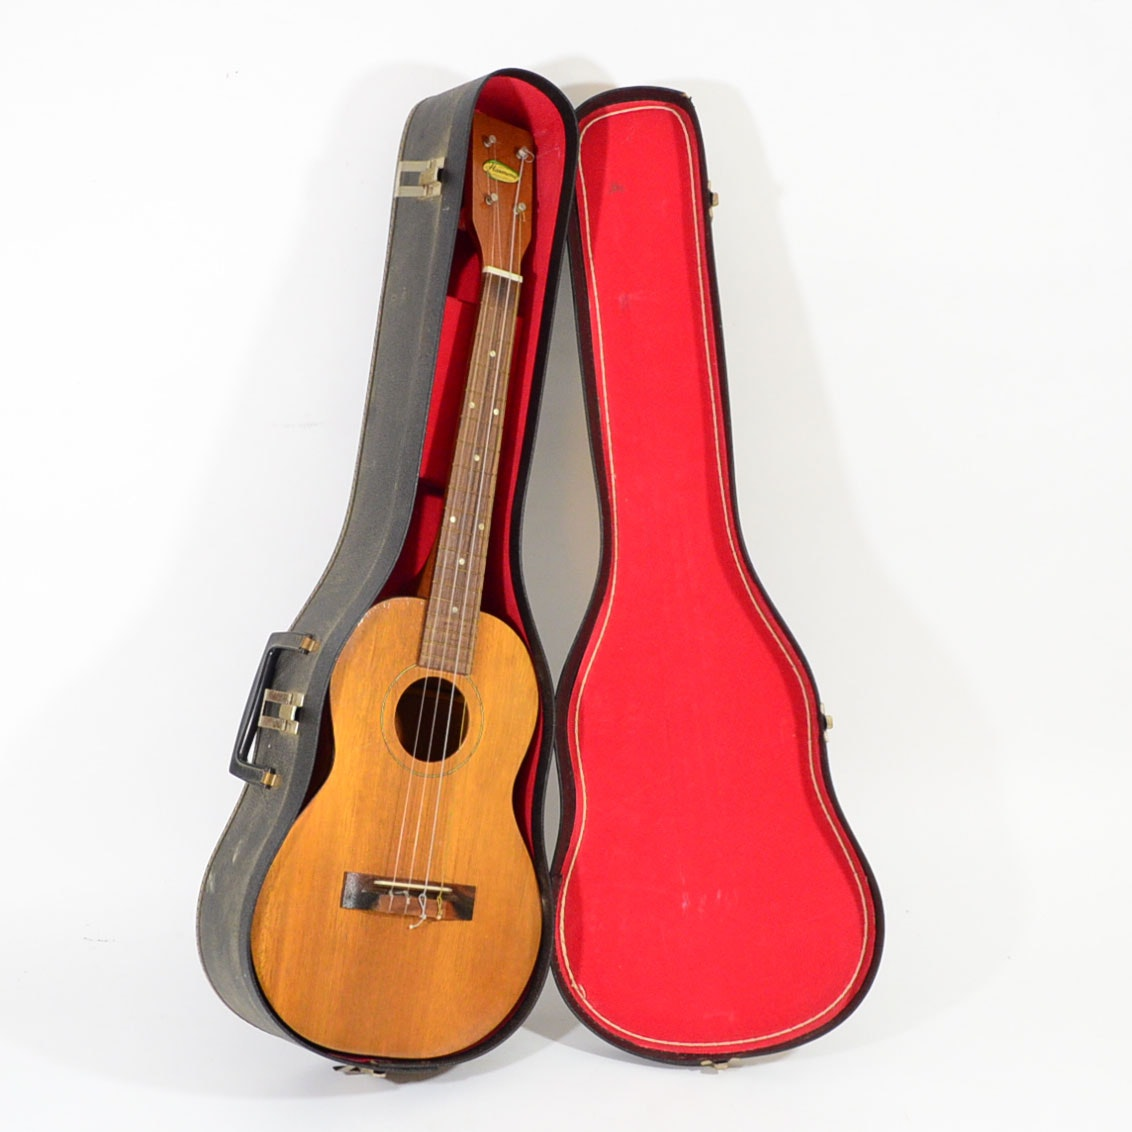 dating harmony baritone ukulele Daddy stovepipe lays down some blues on a 30s regal ukulele 6 johnny marvin was with harmony and harmony put out a very cool johnny marvin tenor ukulele with.